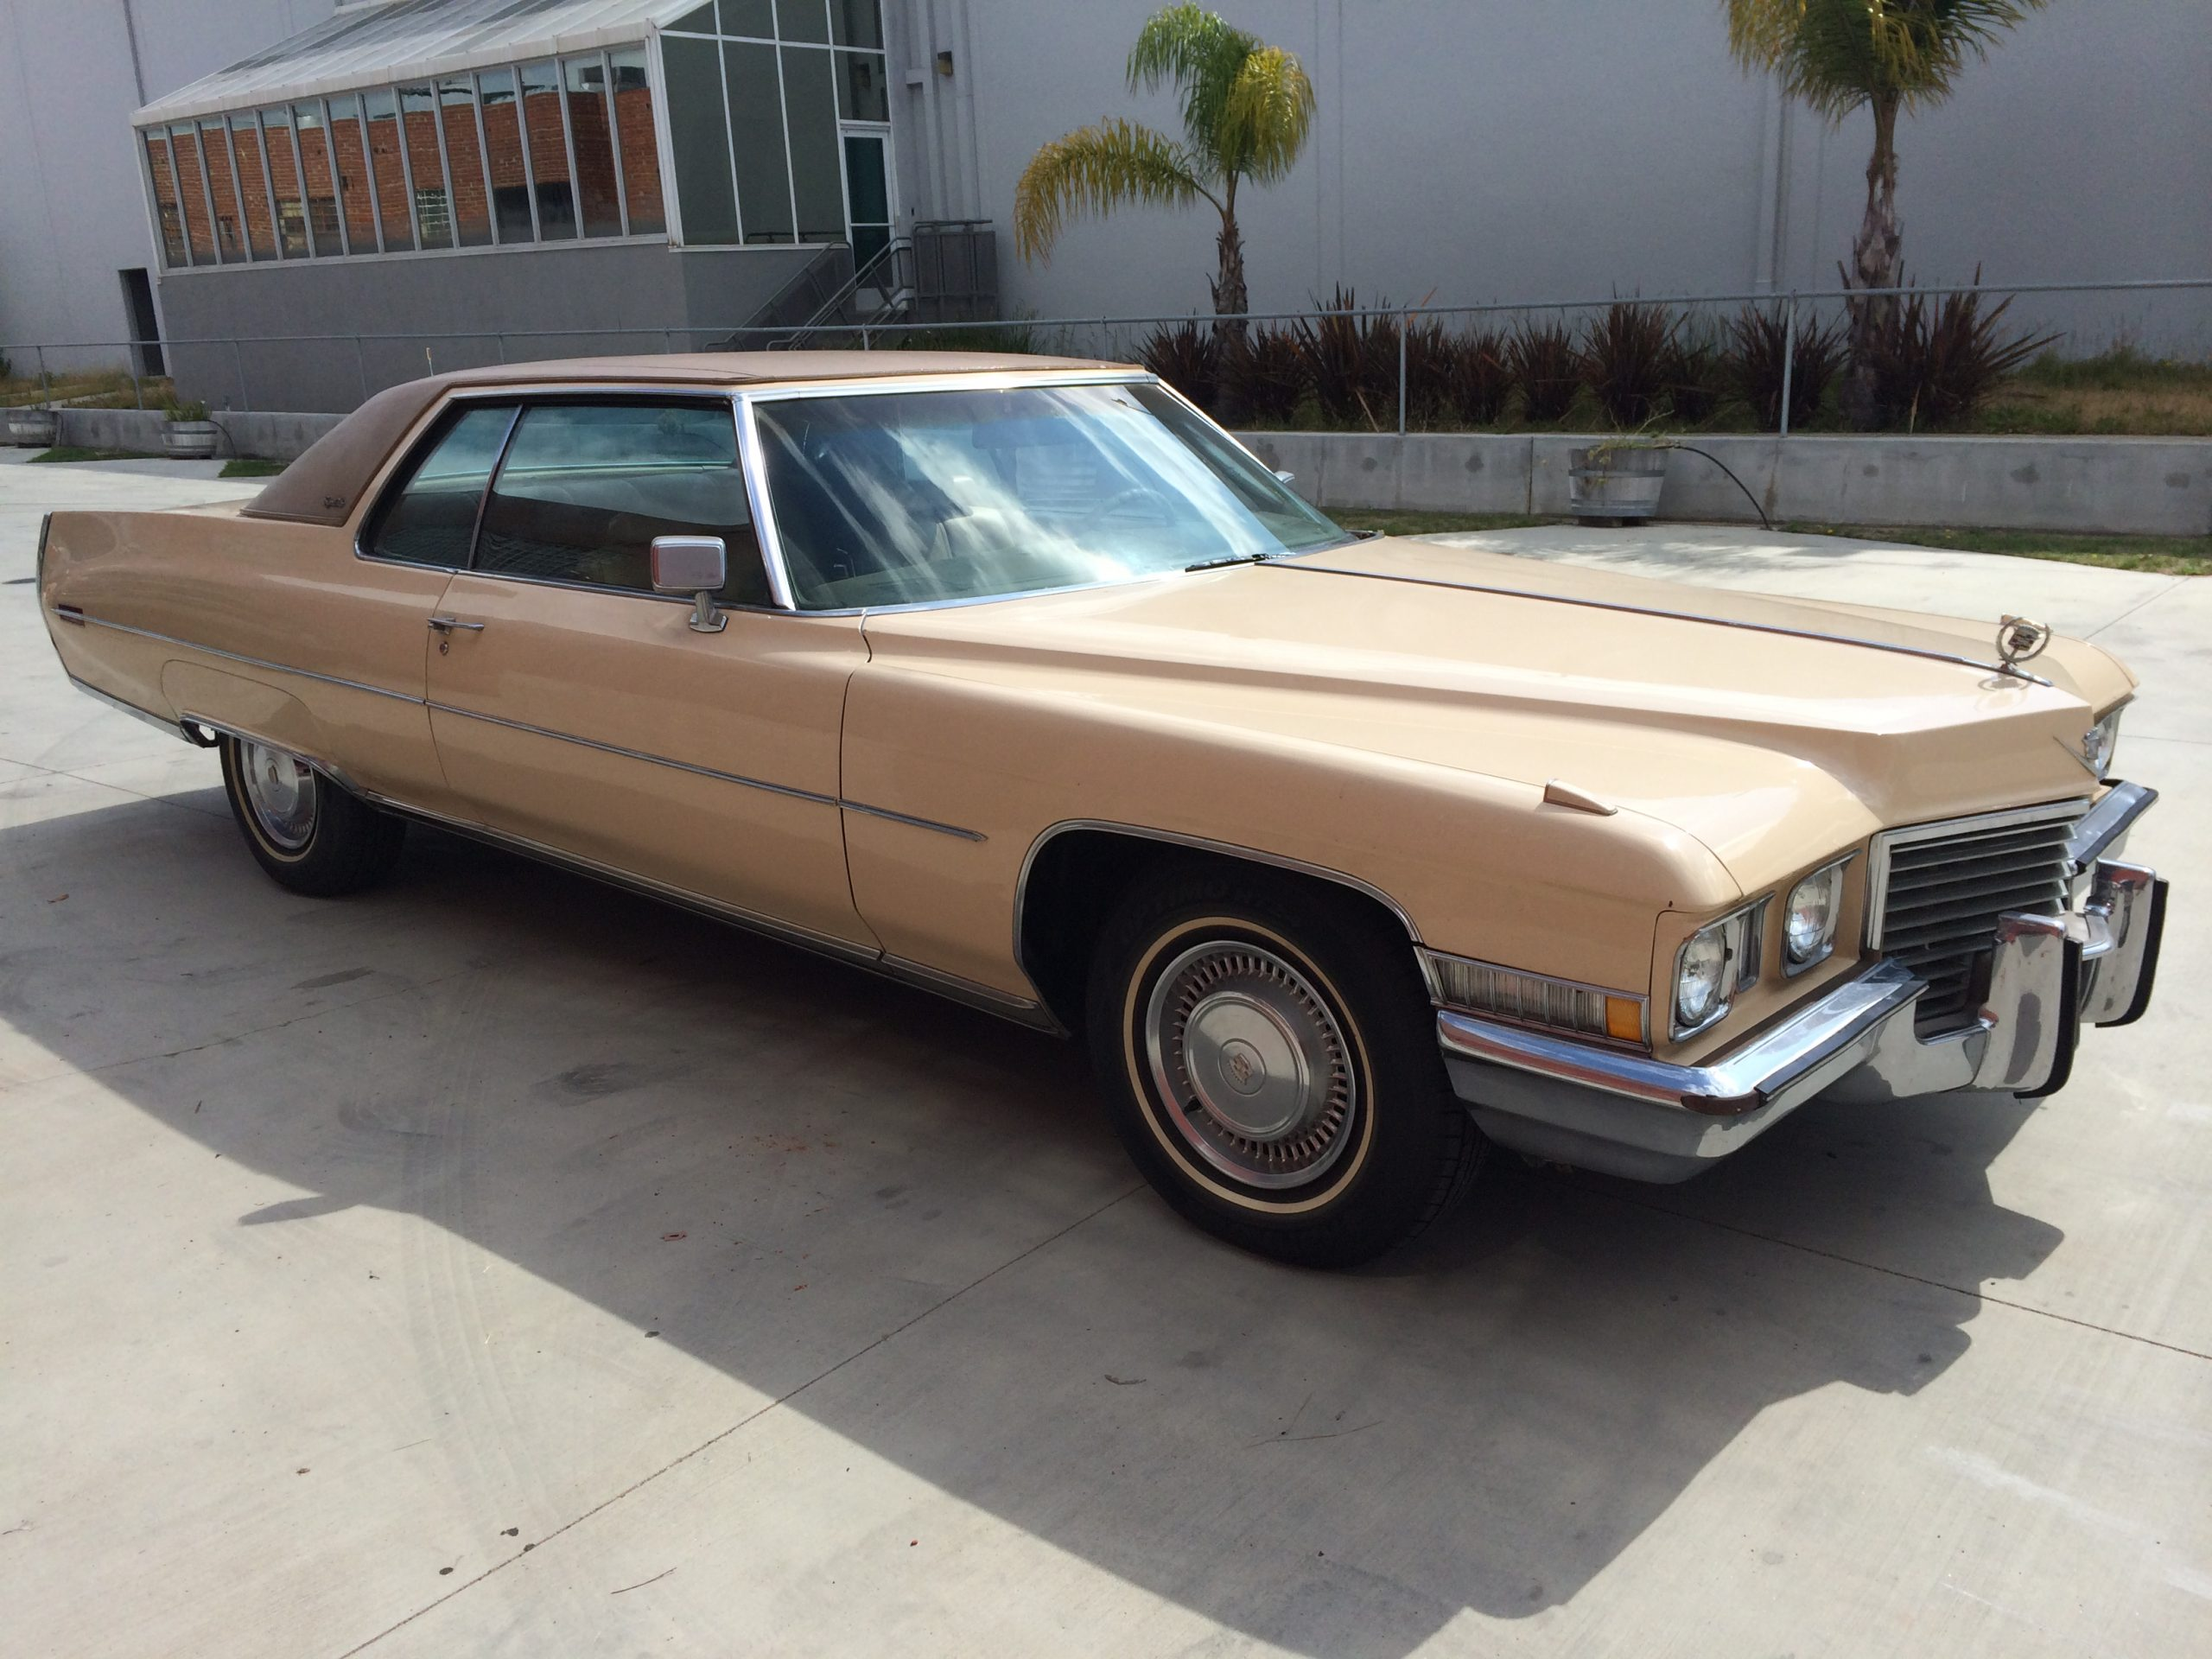 1972 Cadillac for rent